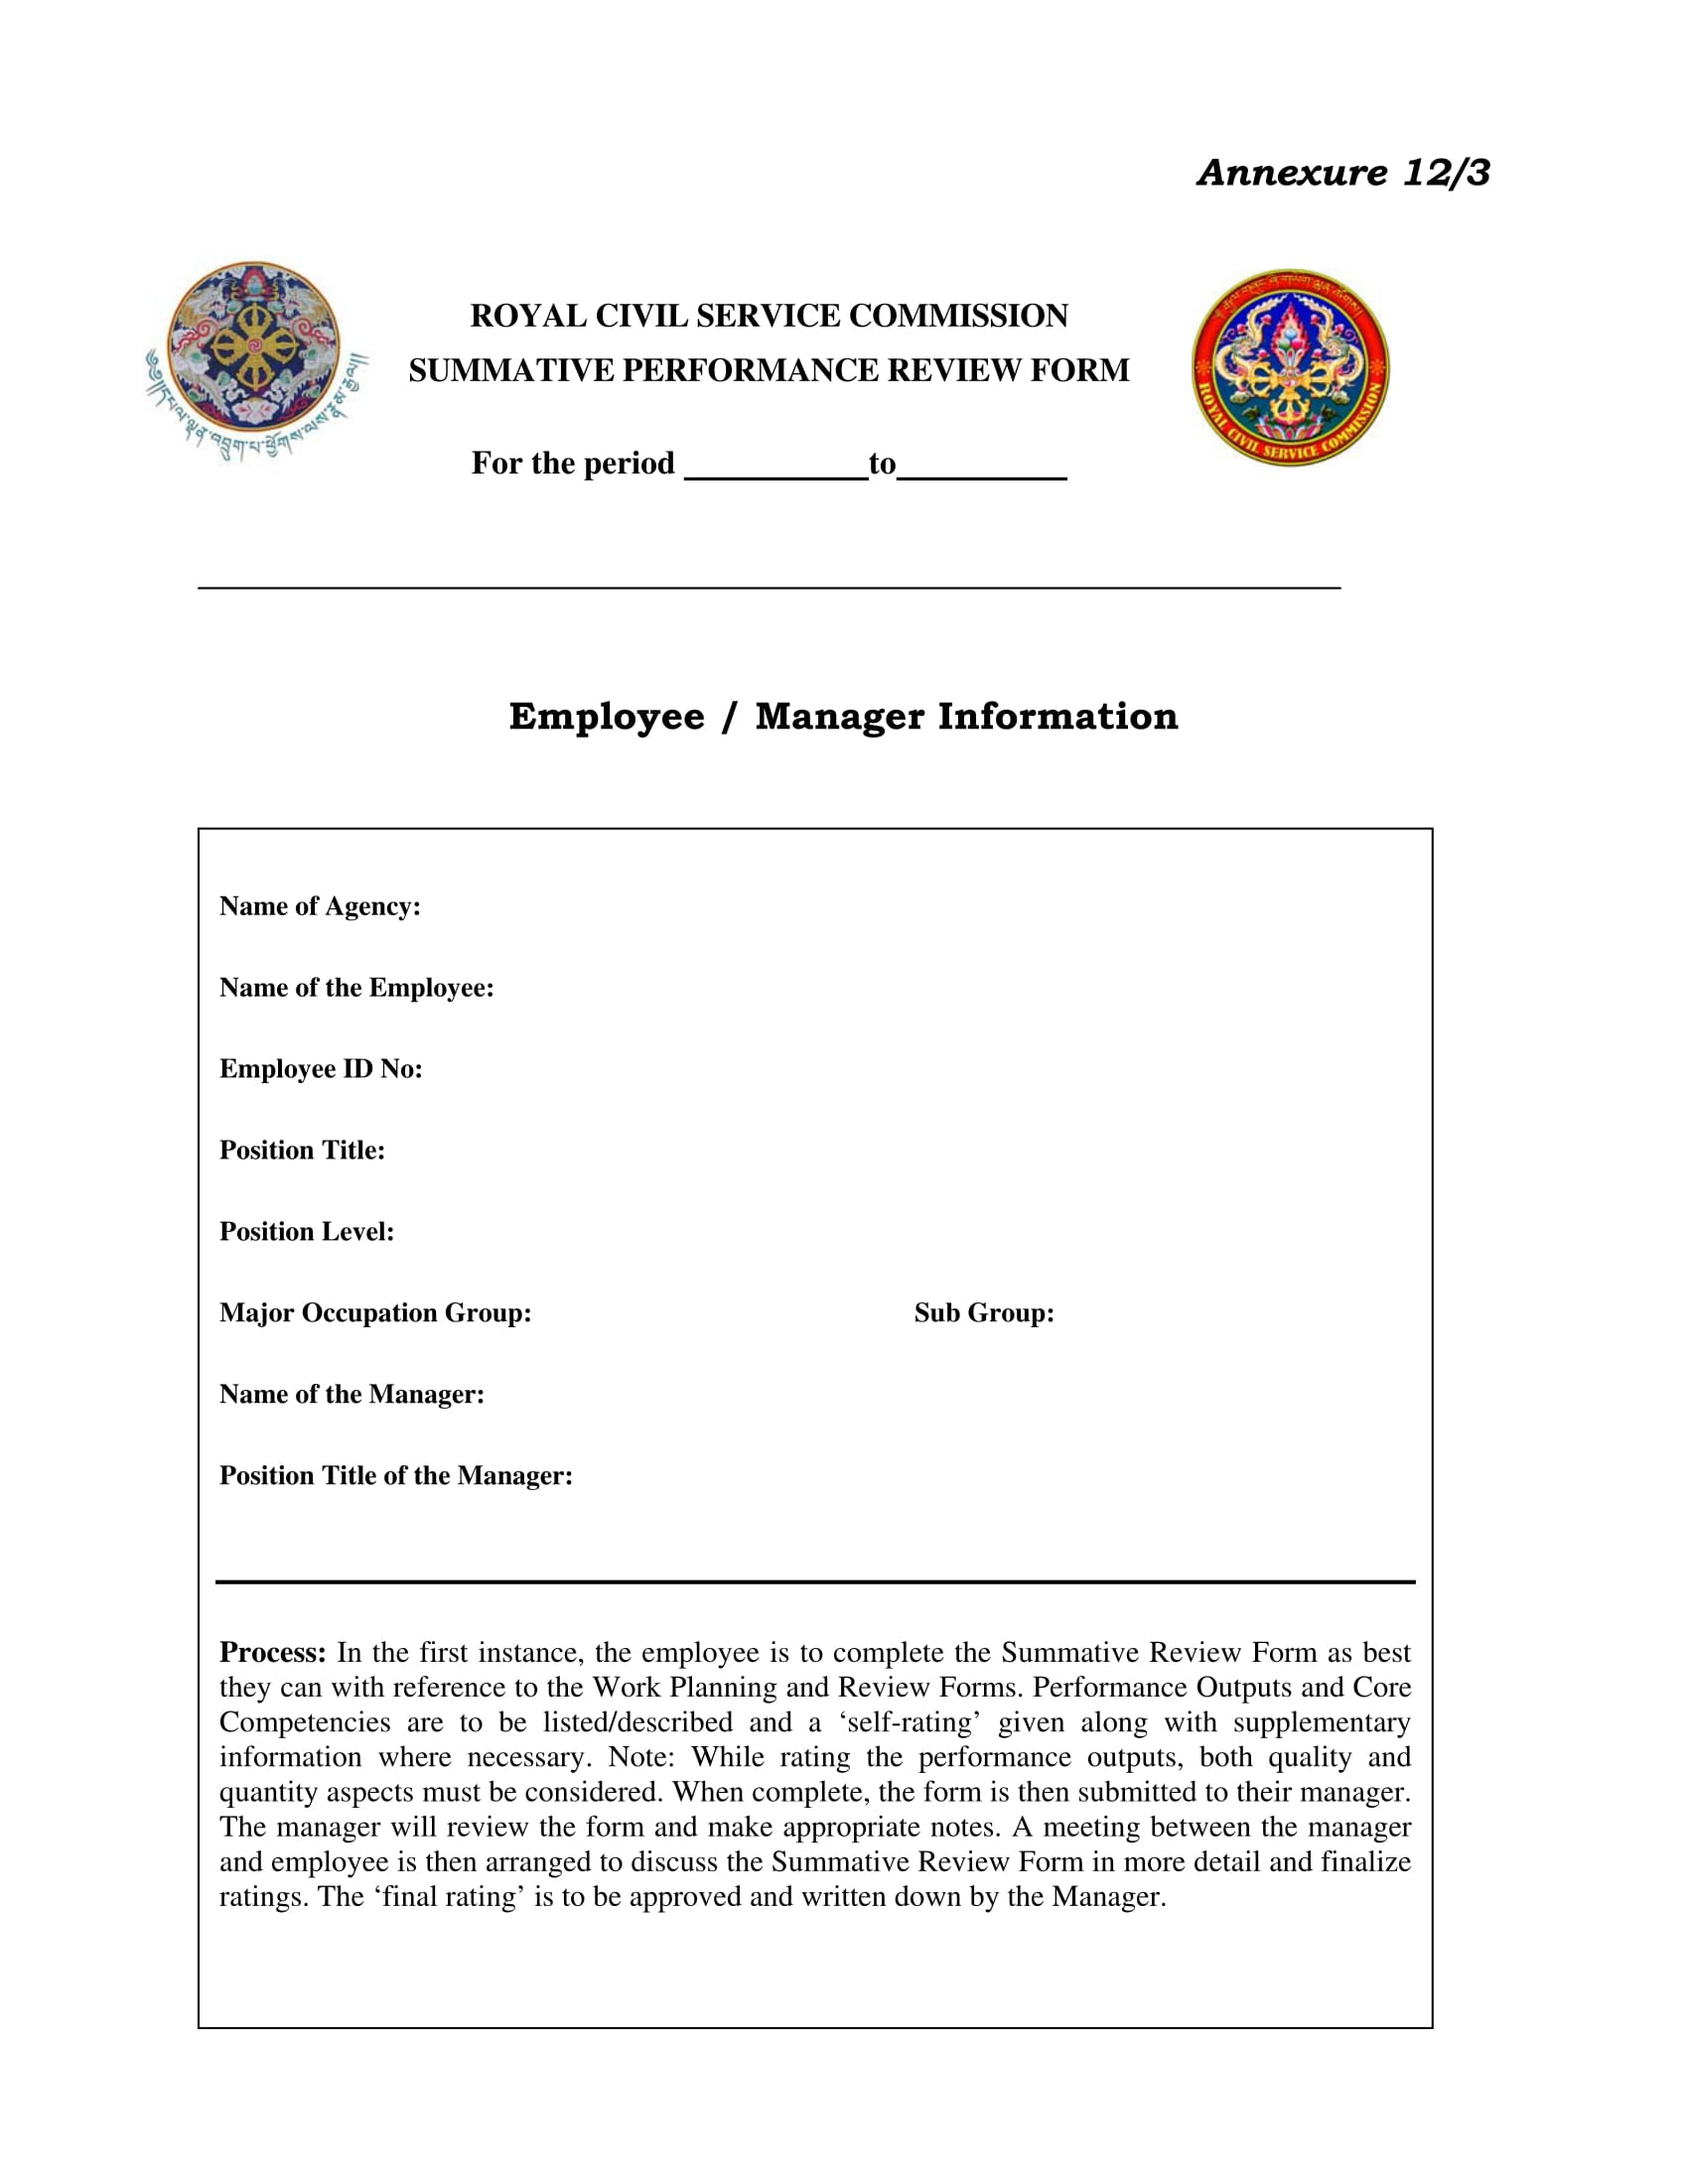 manager summative performance review form 1